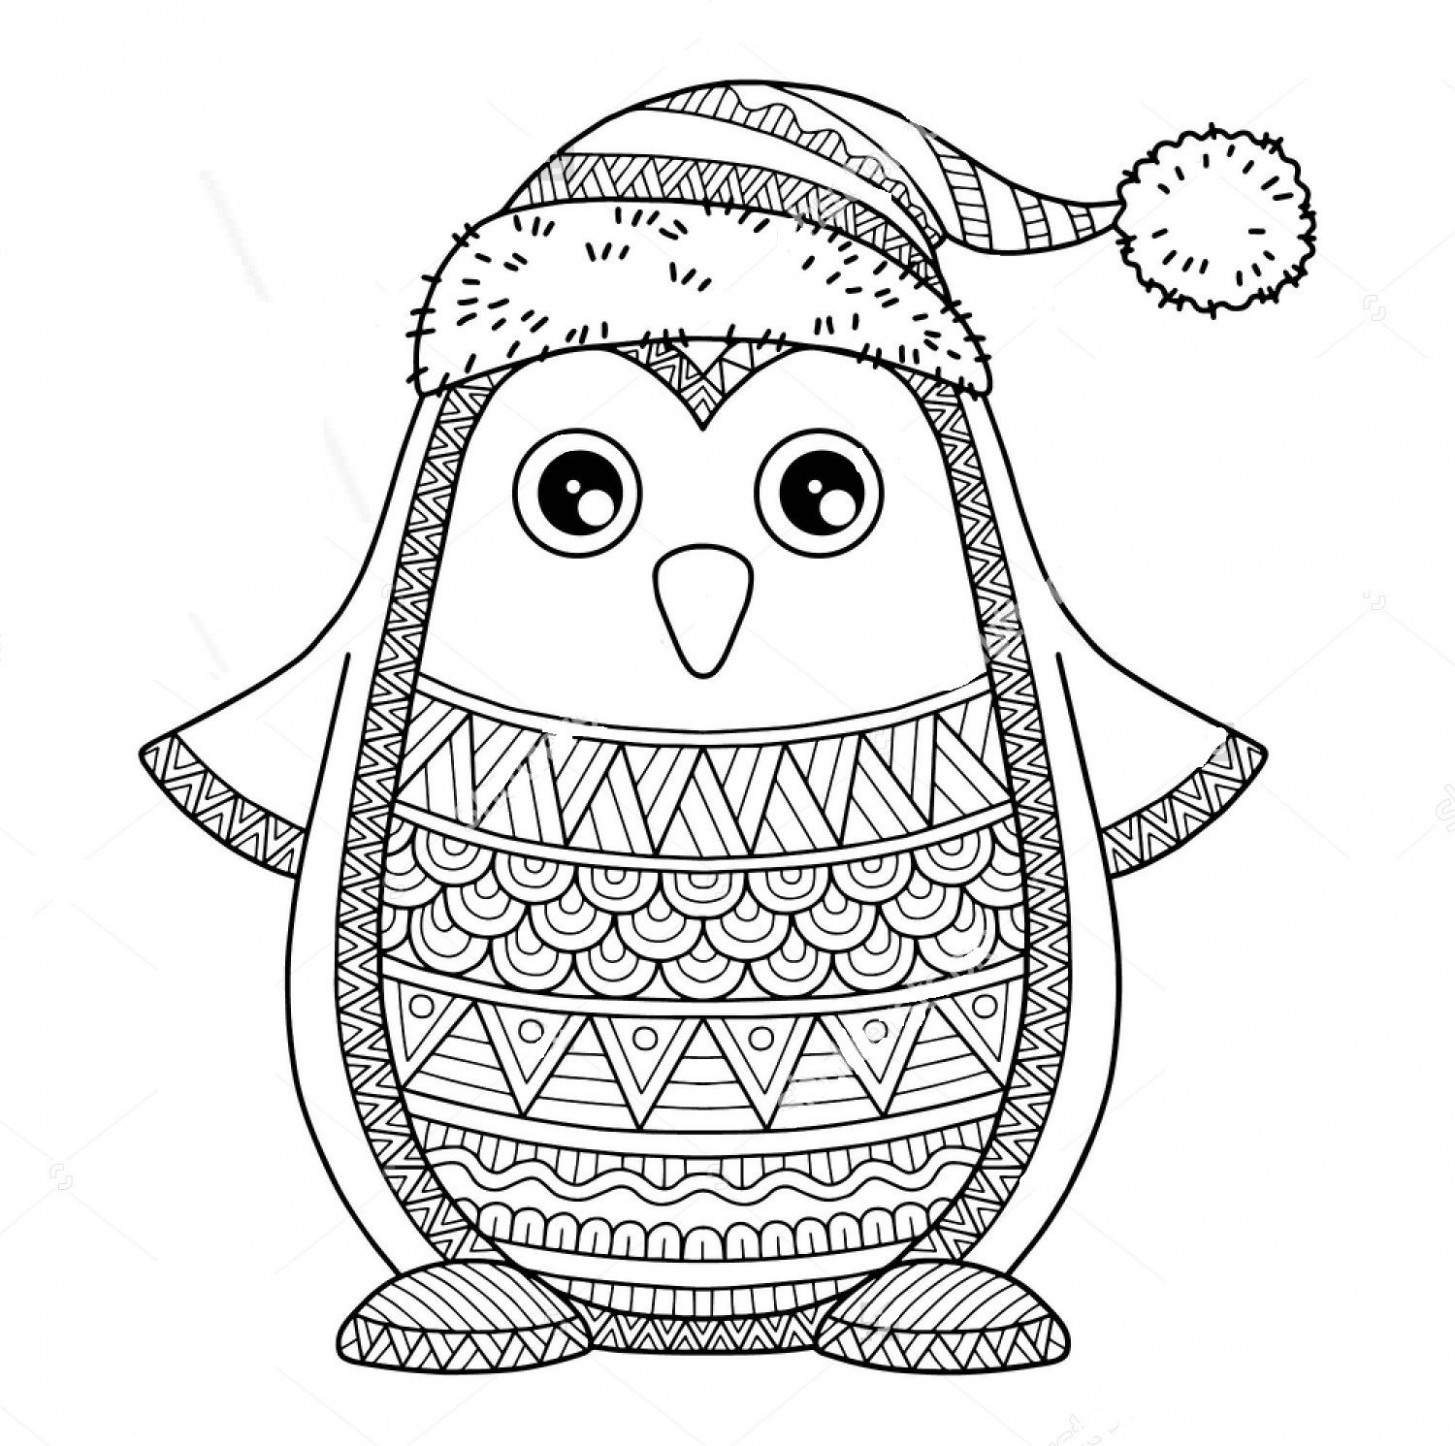 Christmas zentangle coloring page | Christmas coloring pages ..